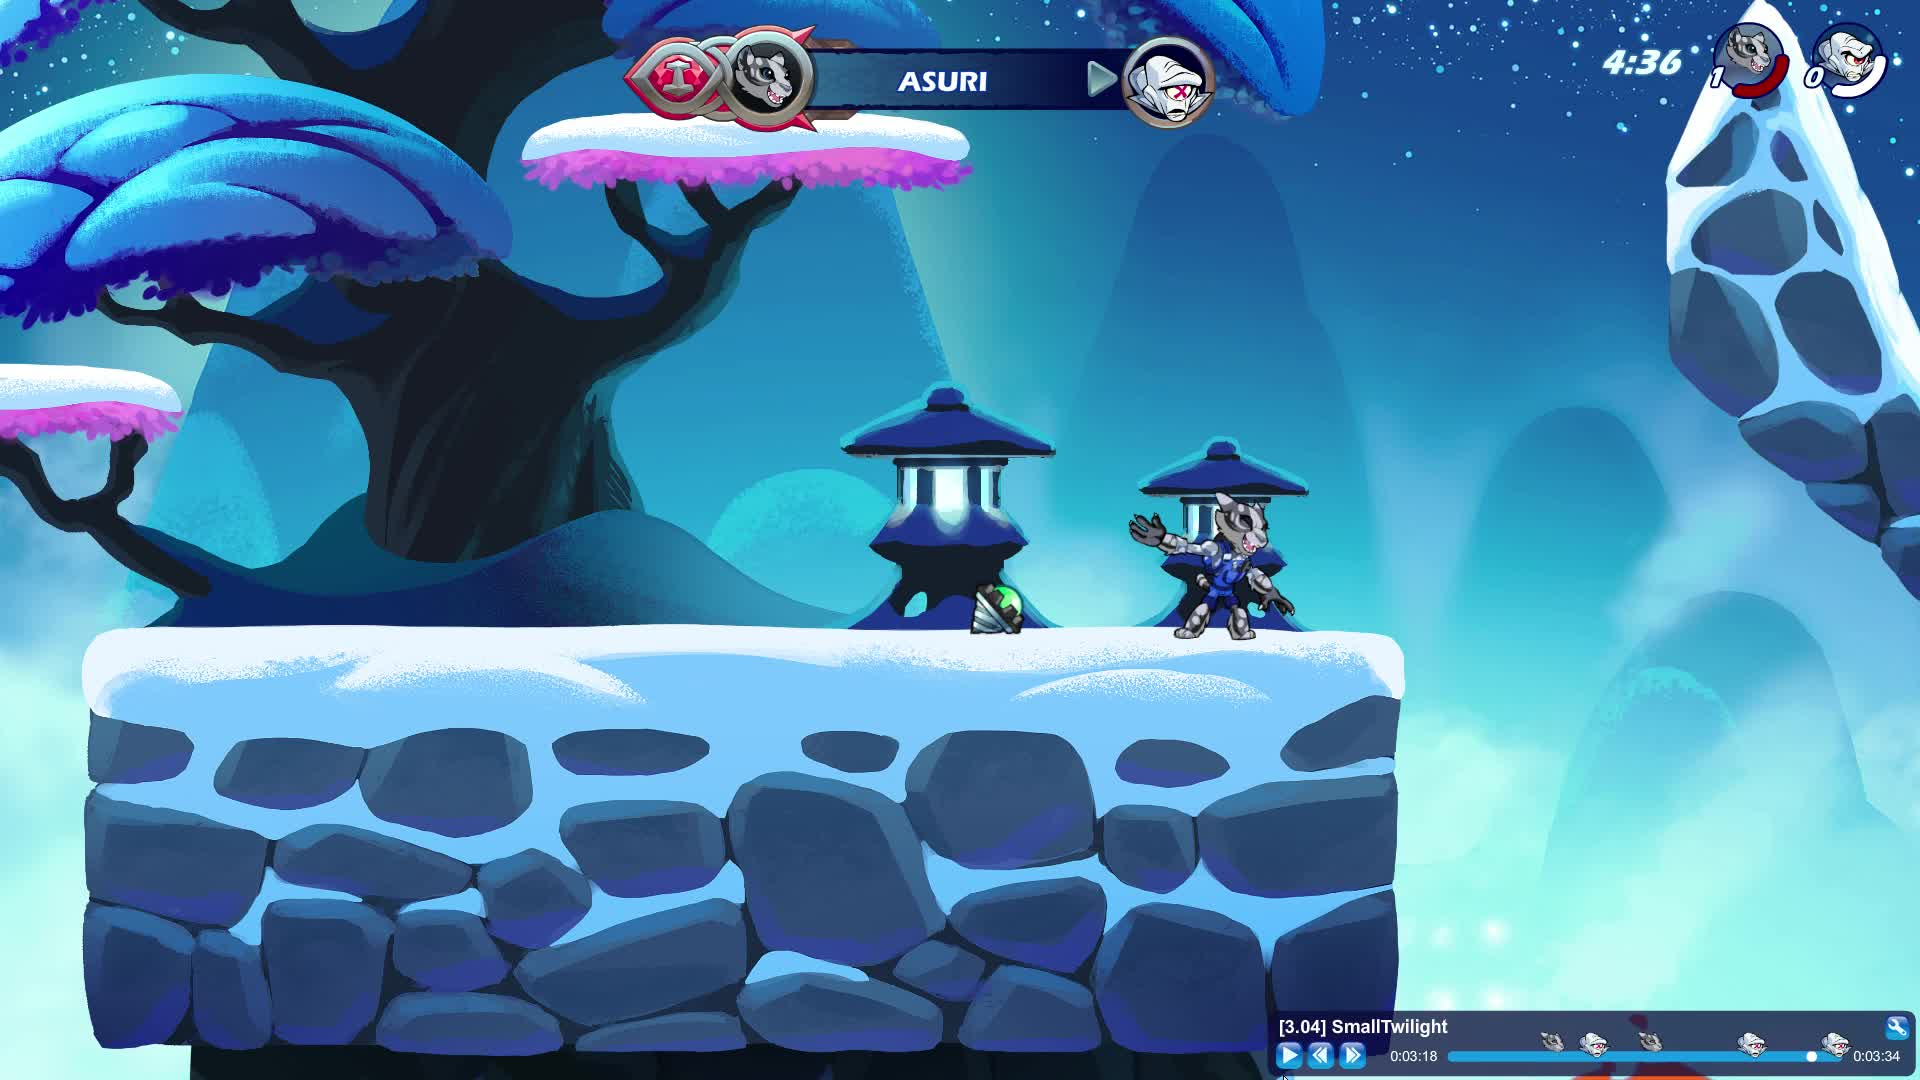 1v1, Brawlhalla, fighting, game, How to ruin someones day GIFs